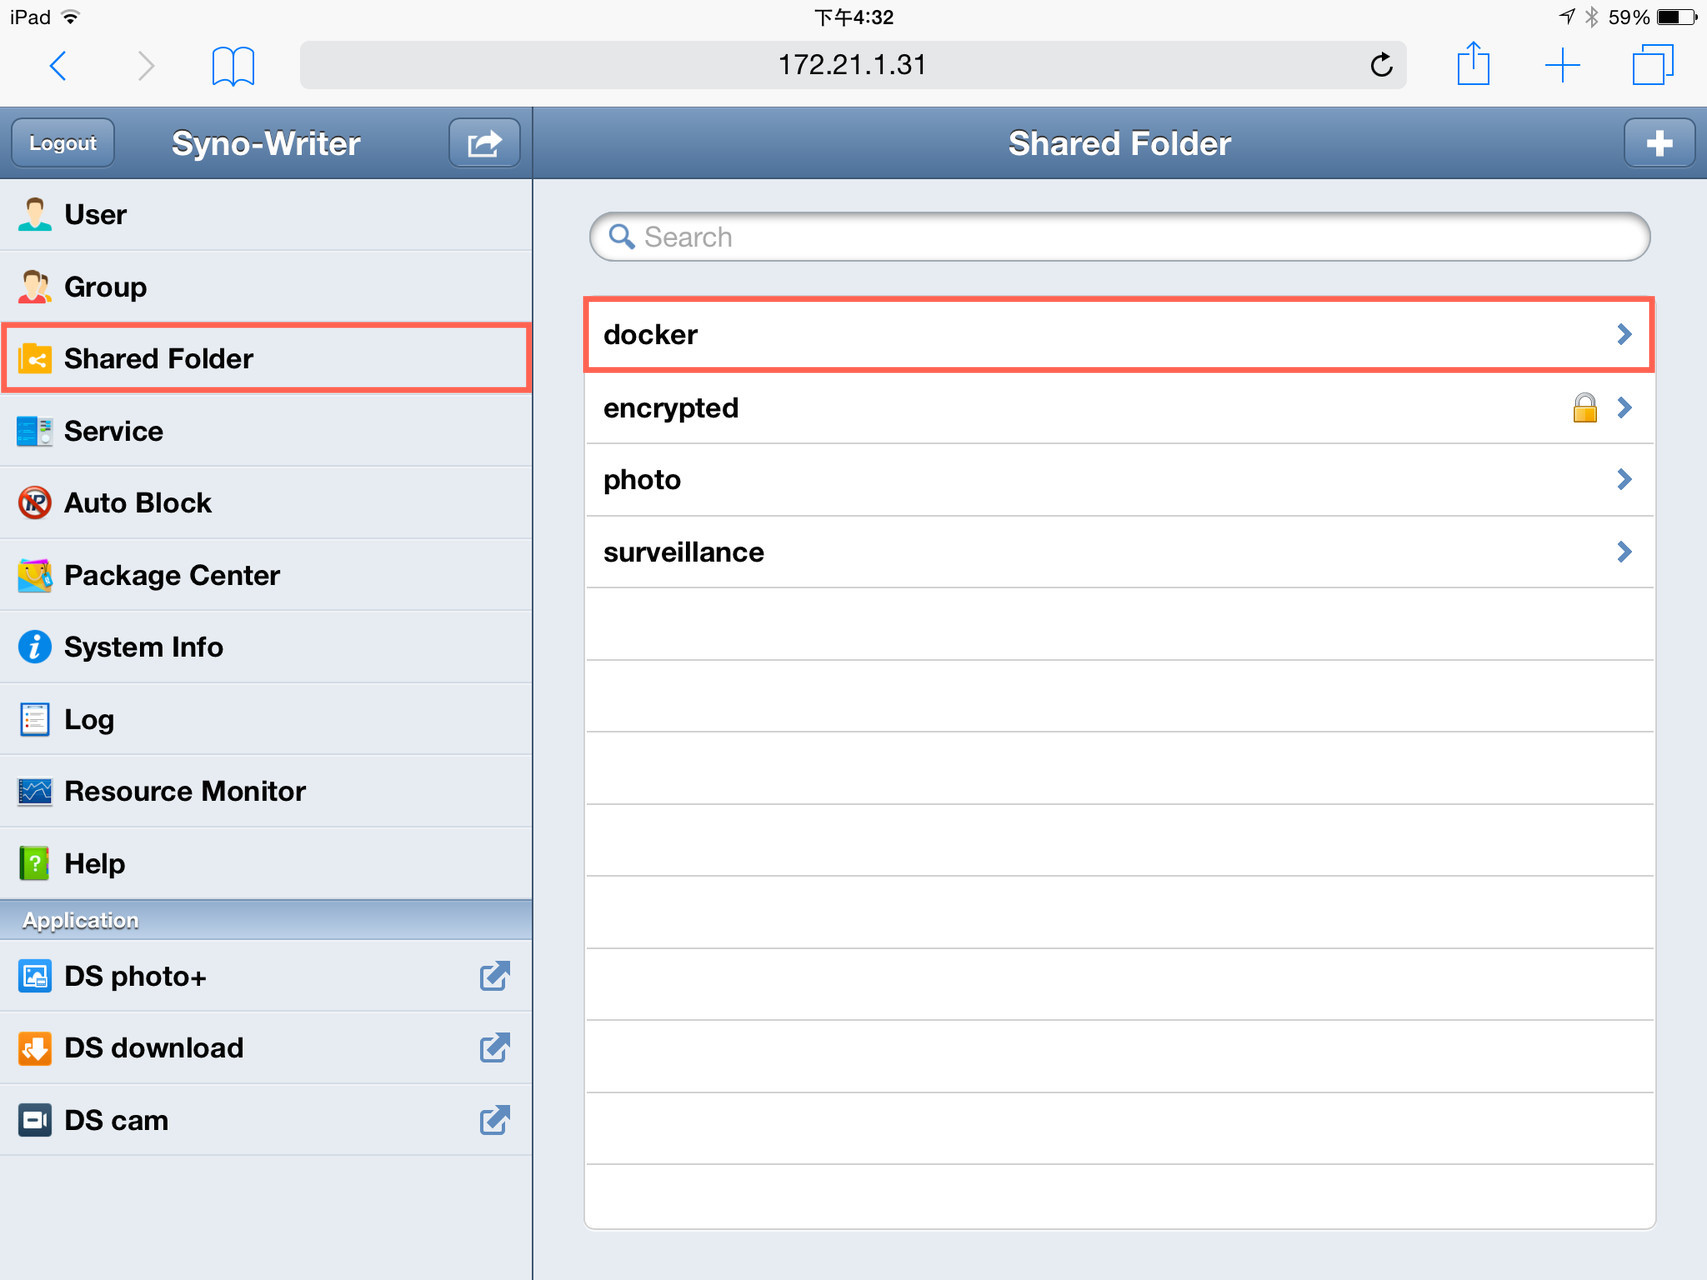 How to access and manage your Synology NAS using a mobile web